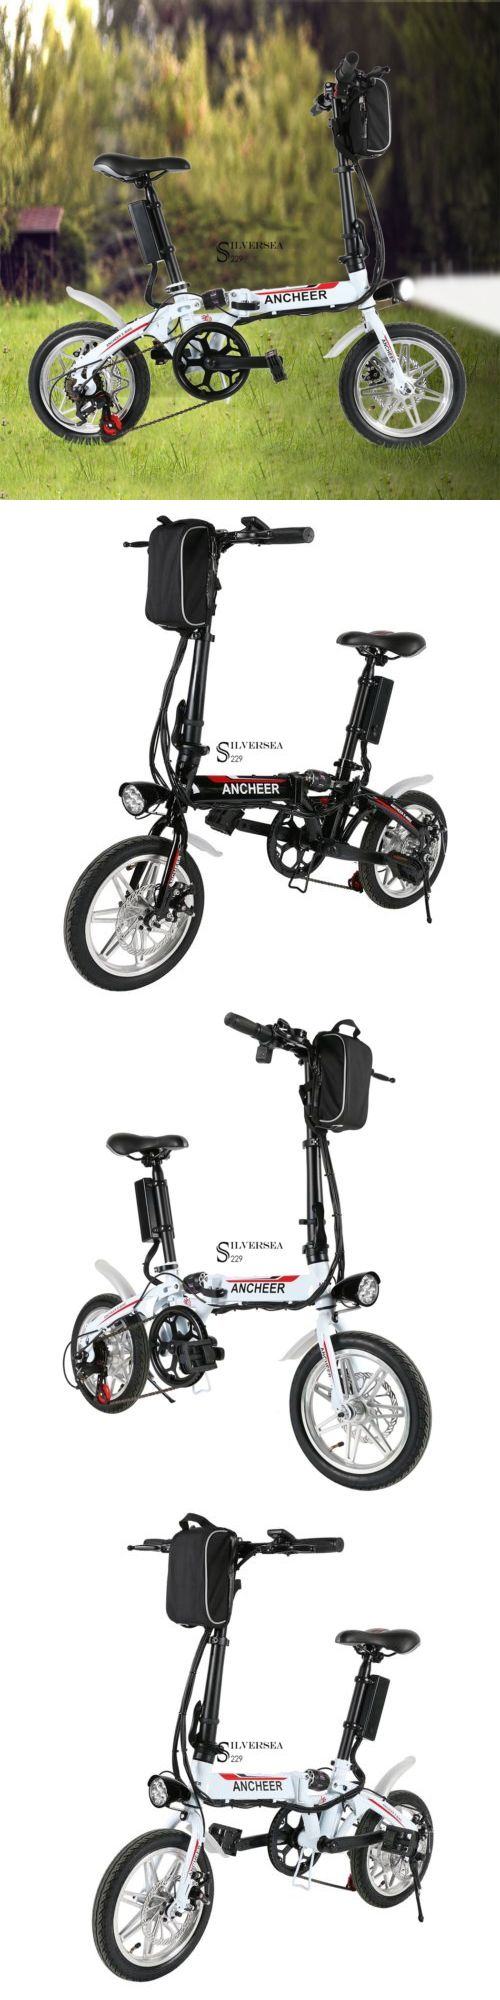 Electric Bicycles 74469: 36V Lithium Powered Electric Folding Bike Professional 6 Modes Fly-Wheel#Durable -> BUY IT NOW ONLY: $464.36 on eBay!